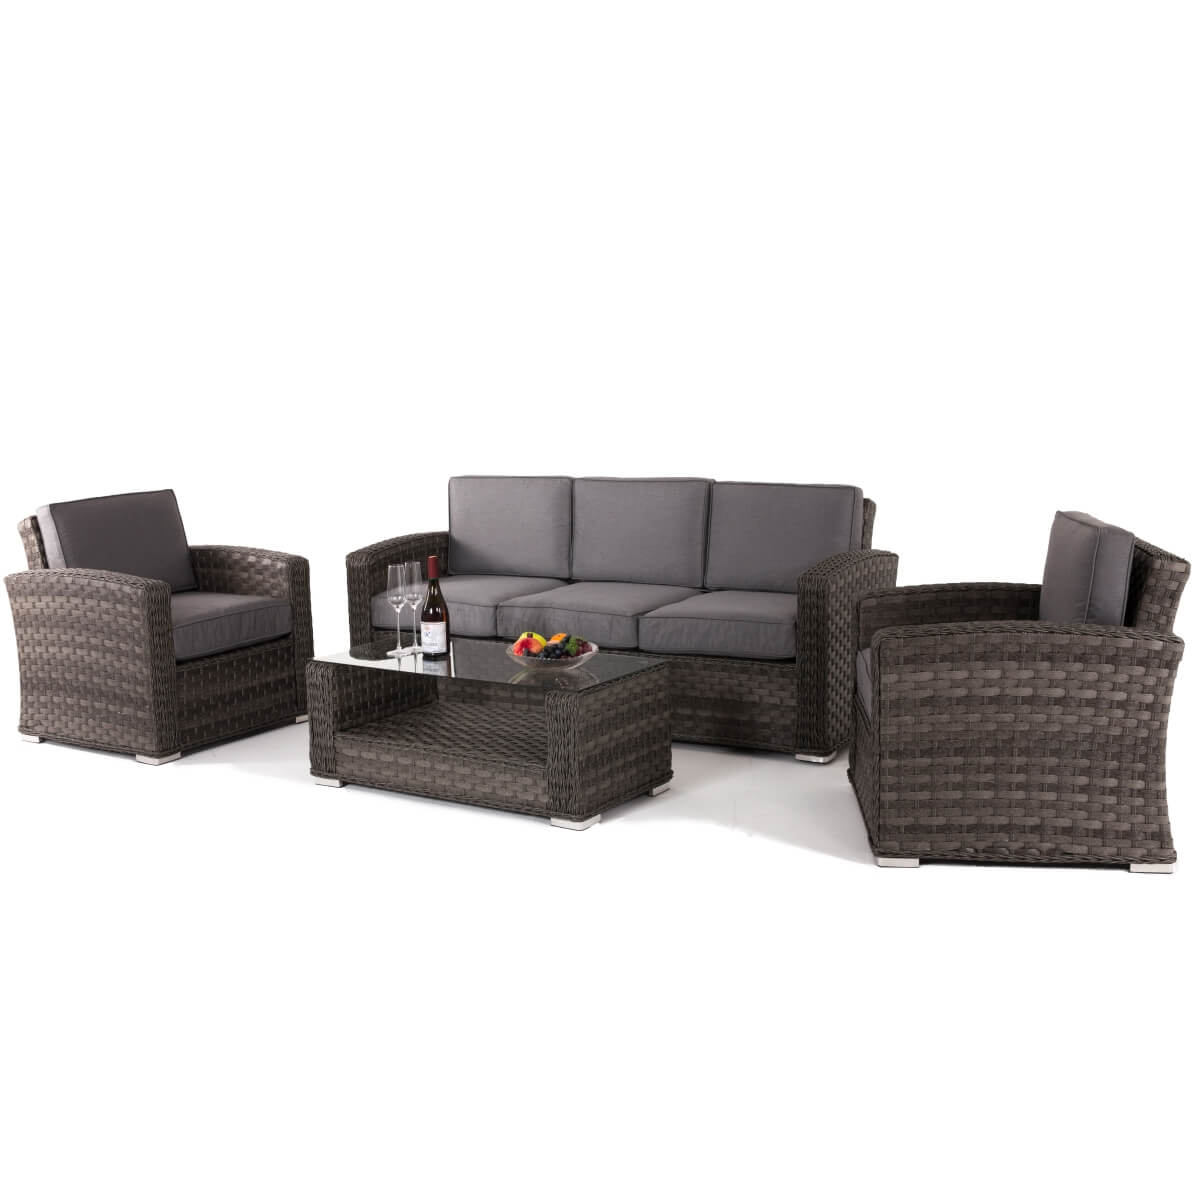 Maze Rattan Furniture Victoria 3 Seat Sofa Set Vic 502050